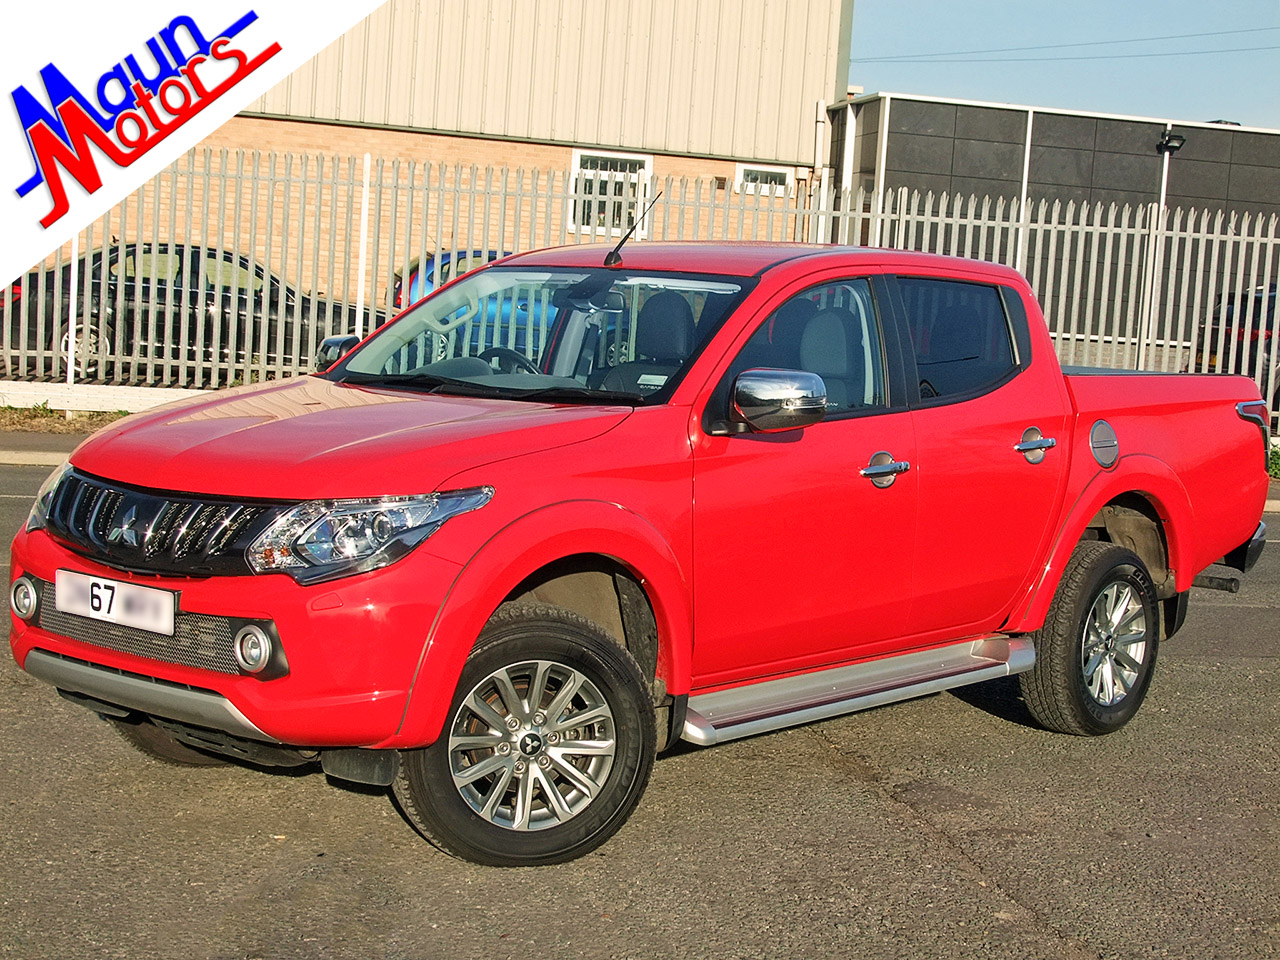 Mitsubishi L200 used 4x4 pick-ups for sale